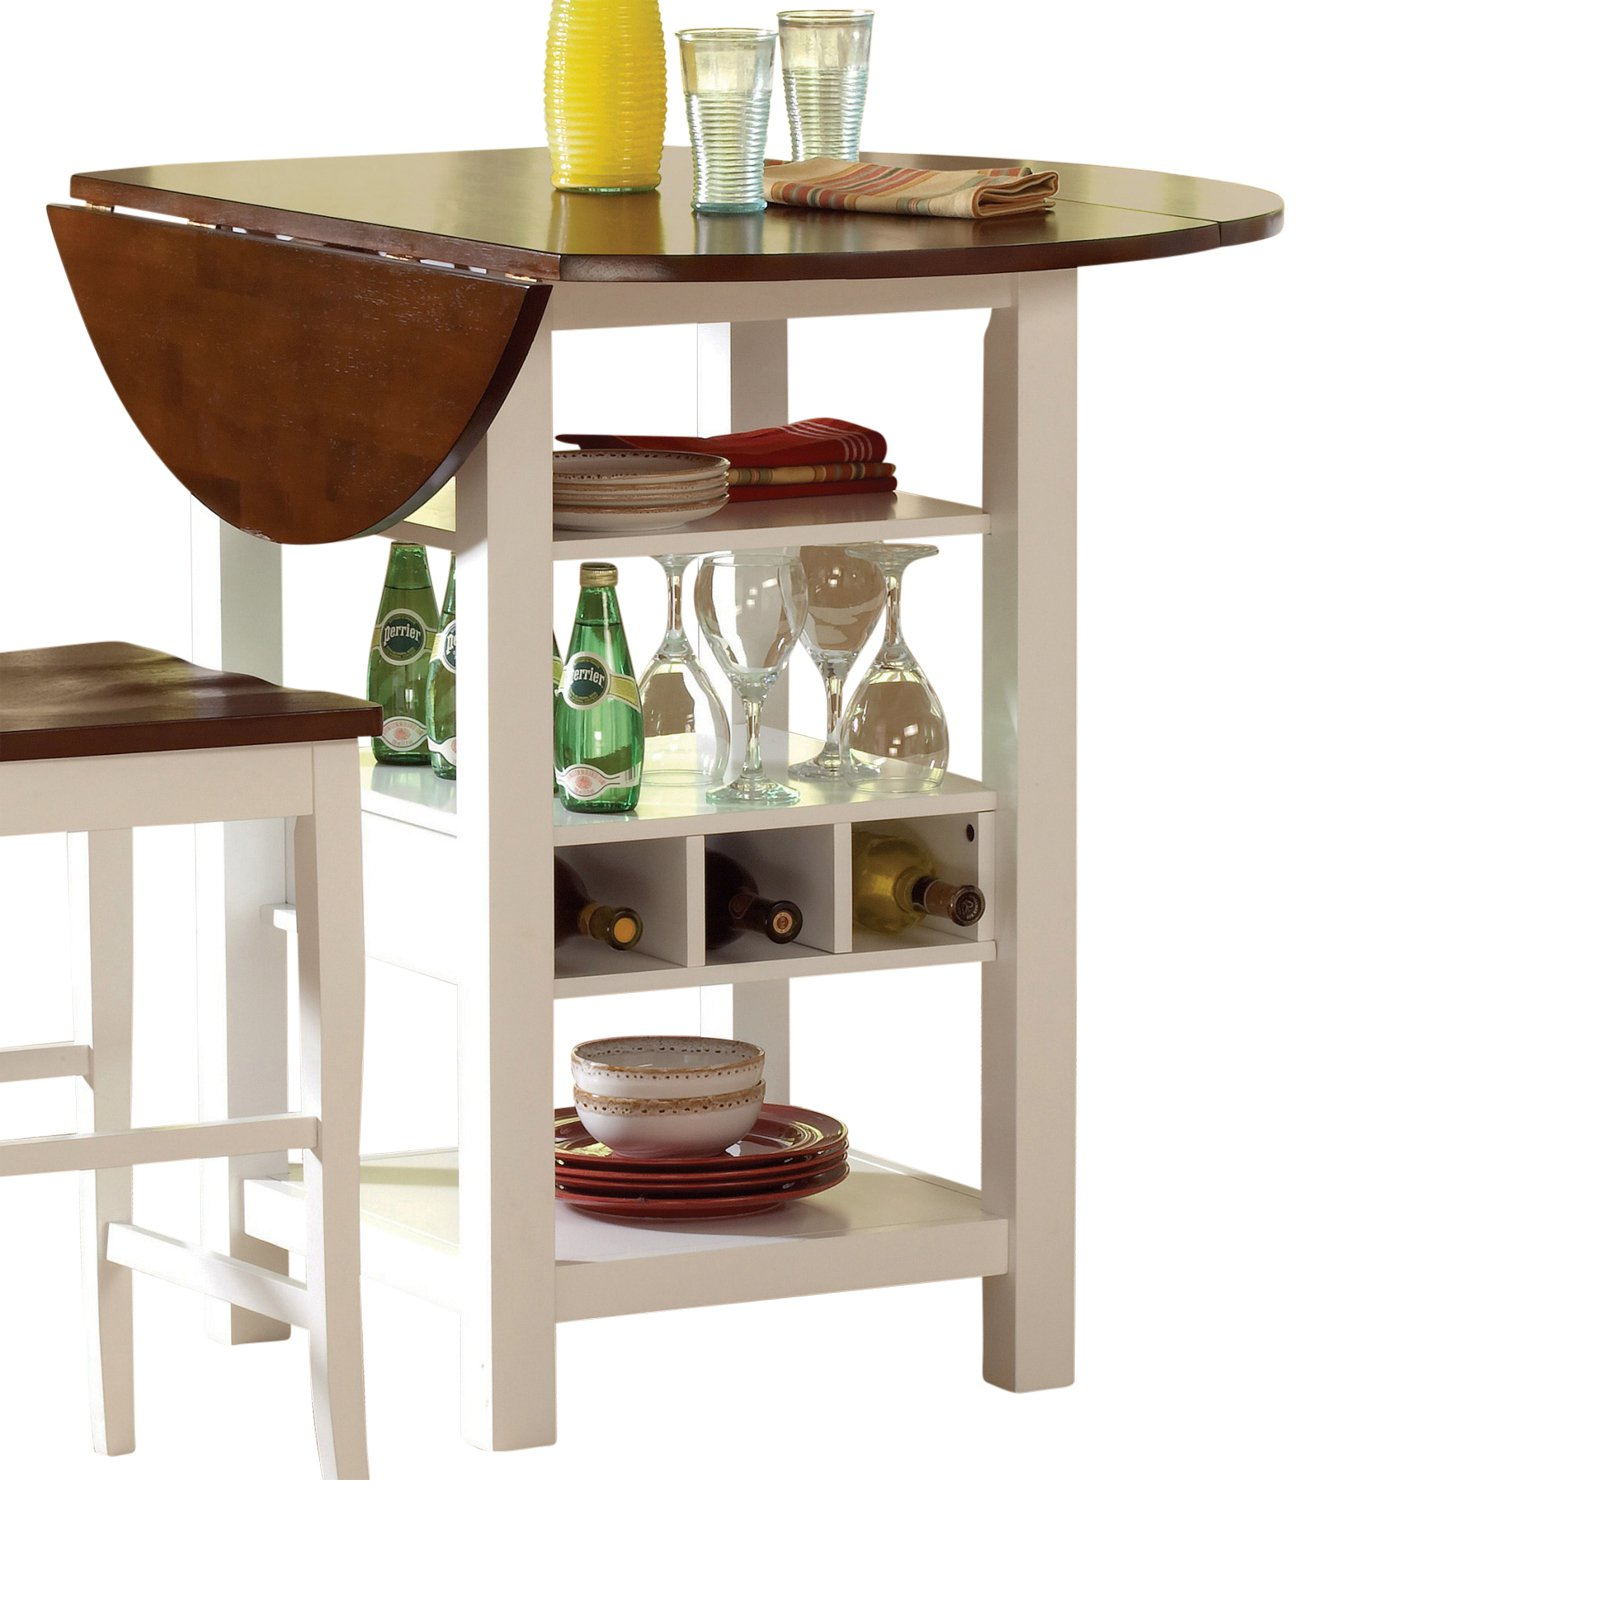 Ridgewood White Round Dining Table With Built In Wine Rack Walmart Com Walmart Com